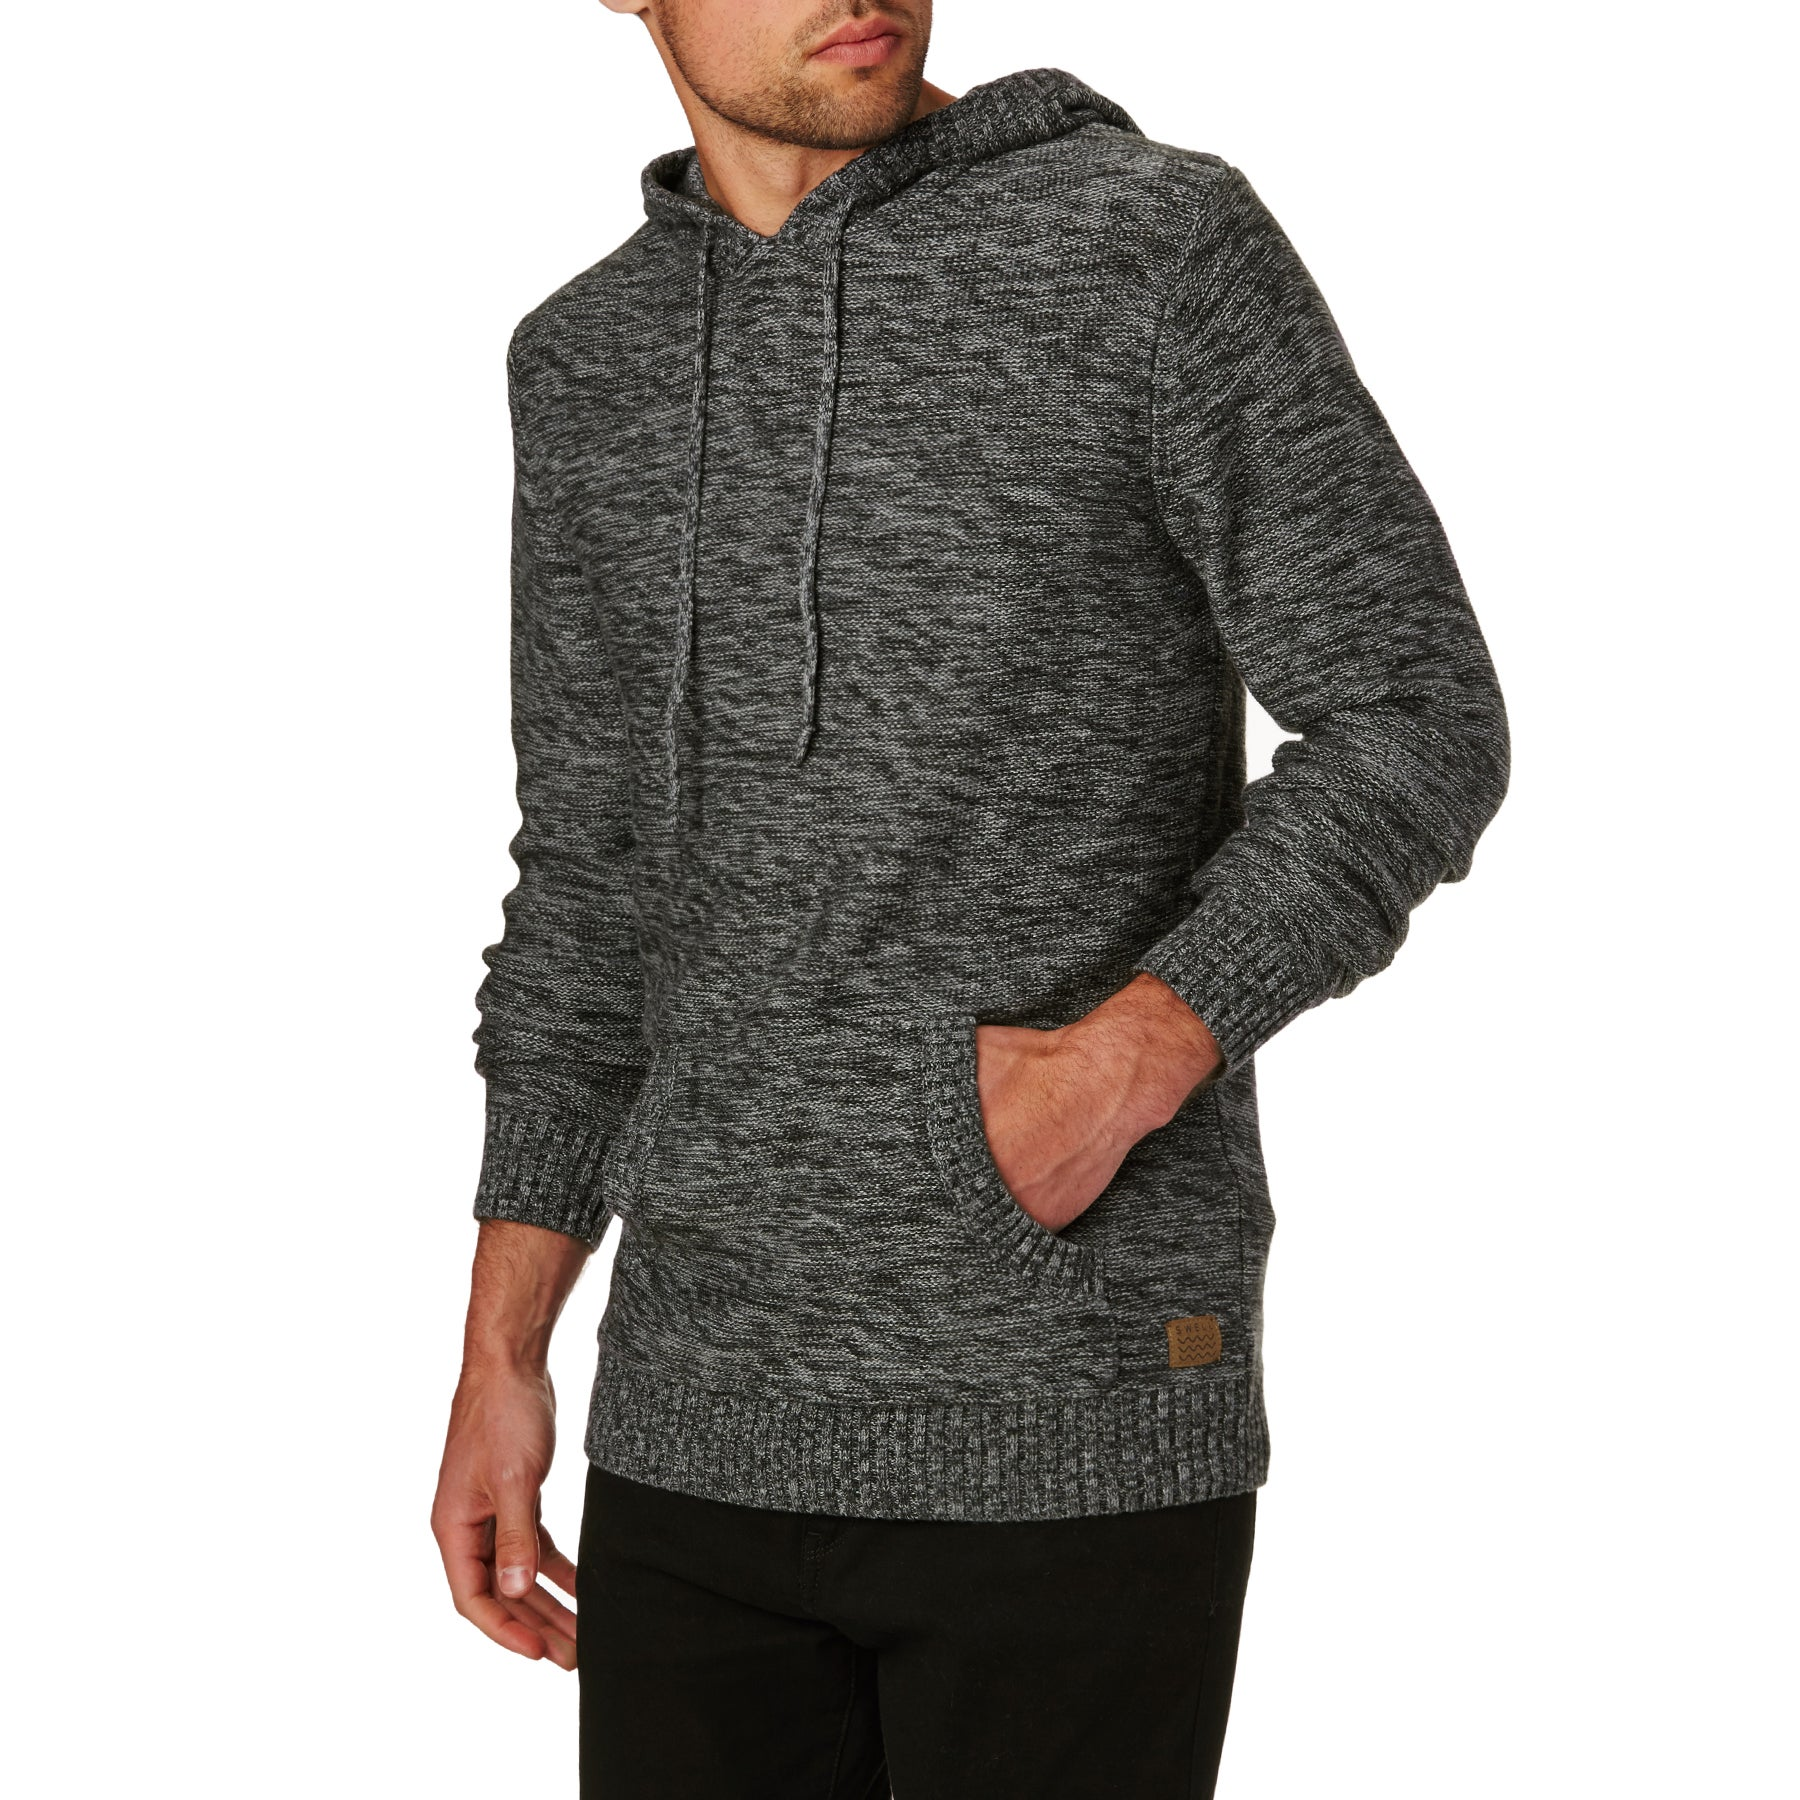 SWELL Society Pullover Hoody - Charcoal